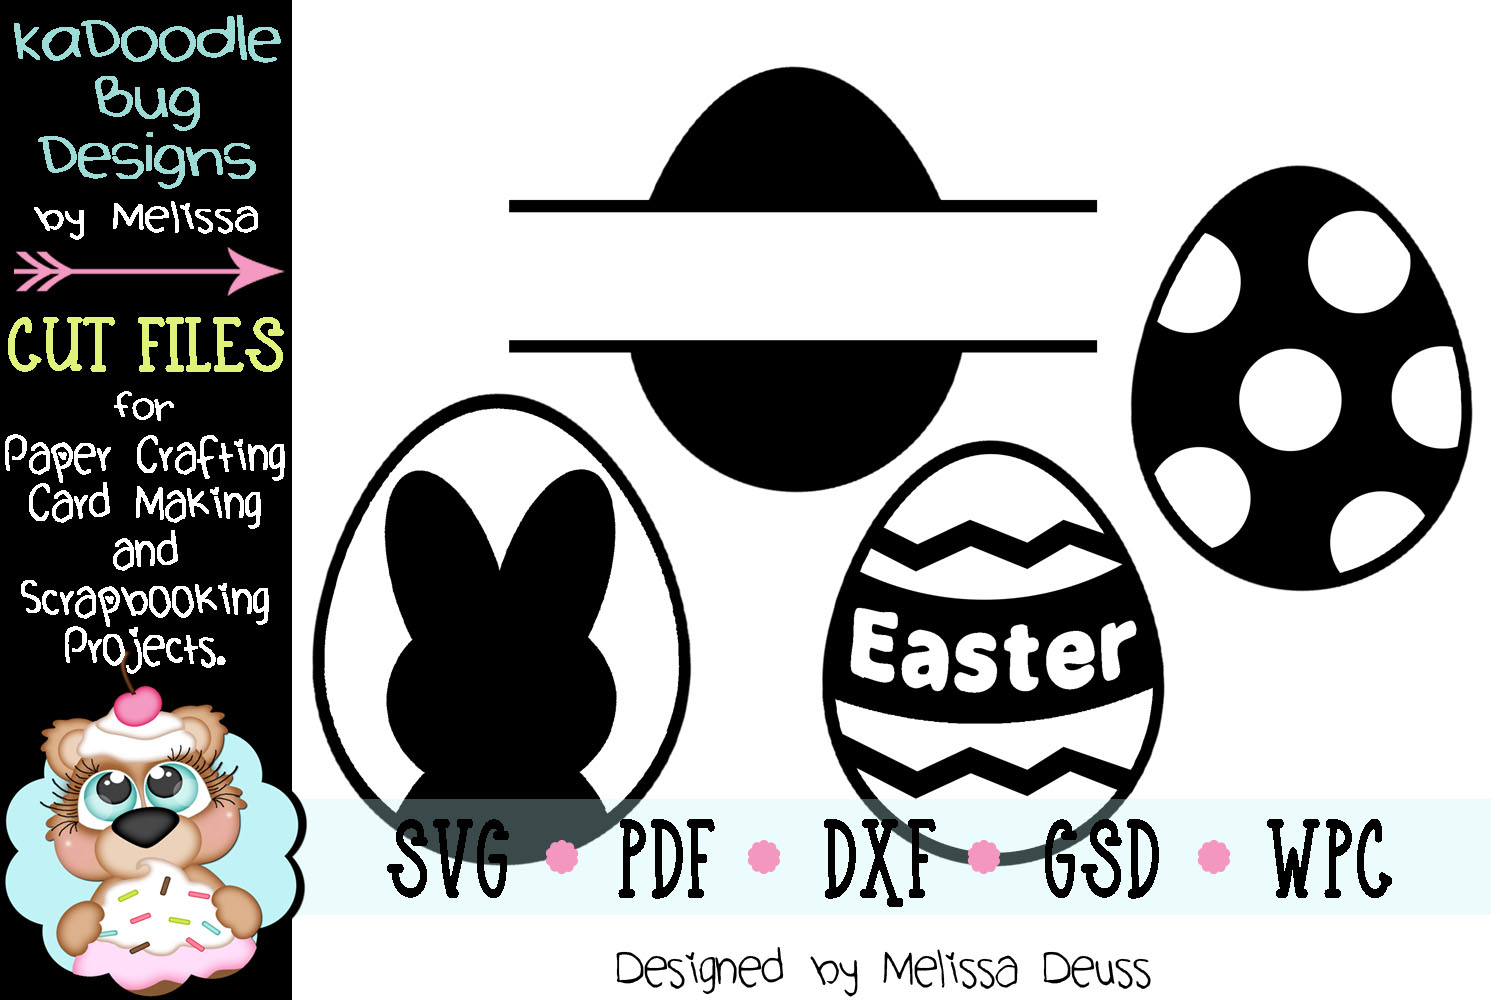 Easter Eggs Vinyl Cut File - SVG PDF DXF GSD WPC example image 1